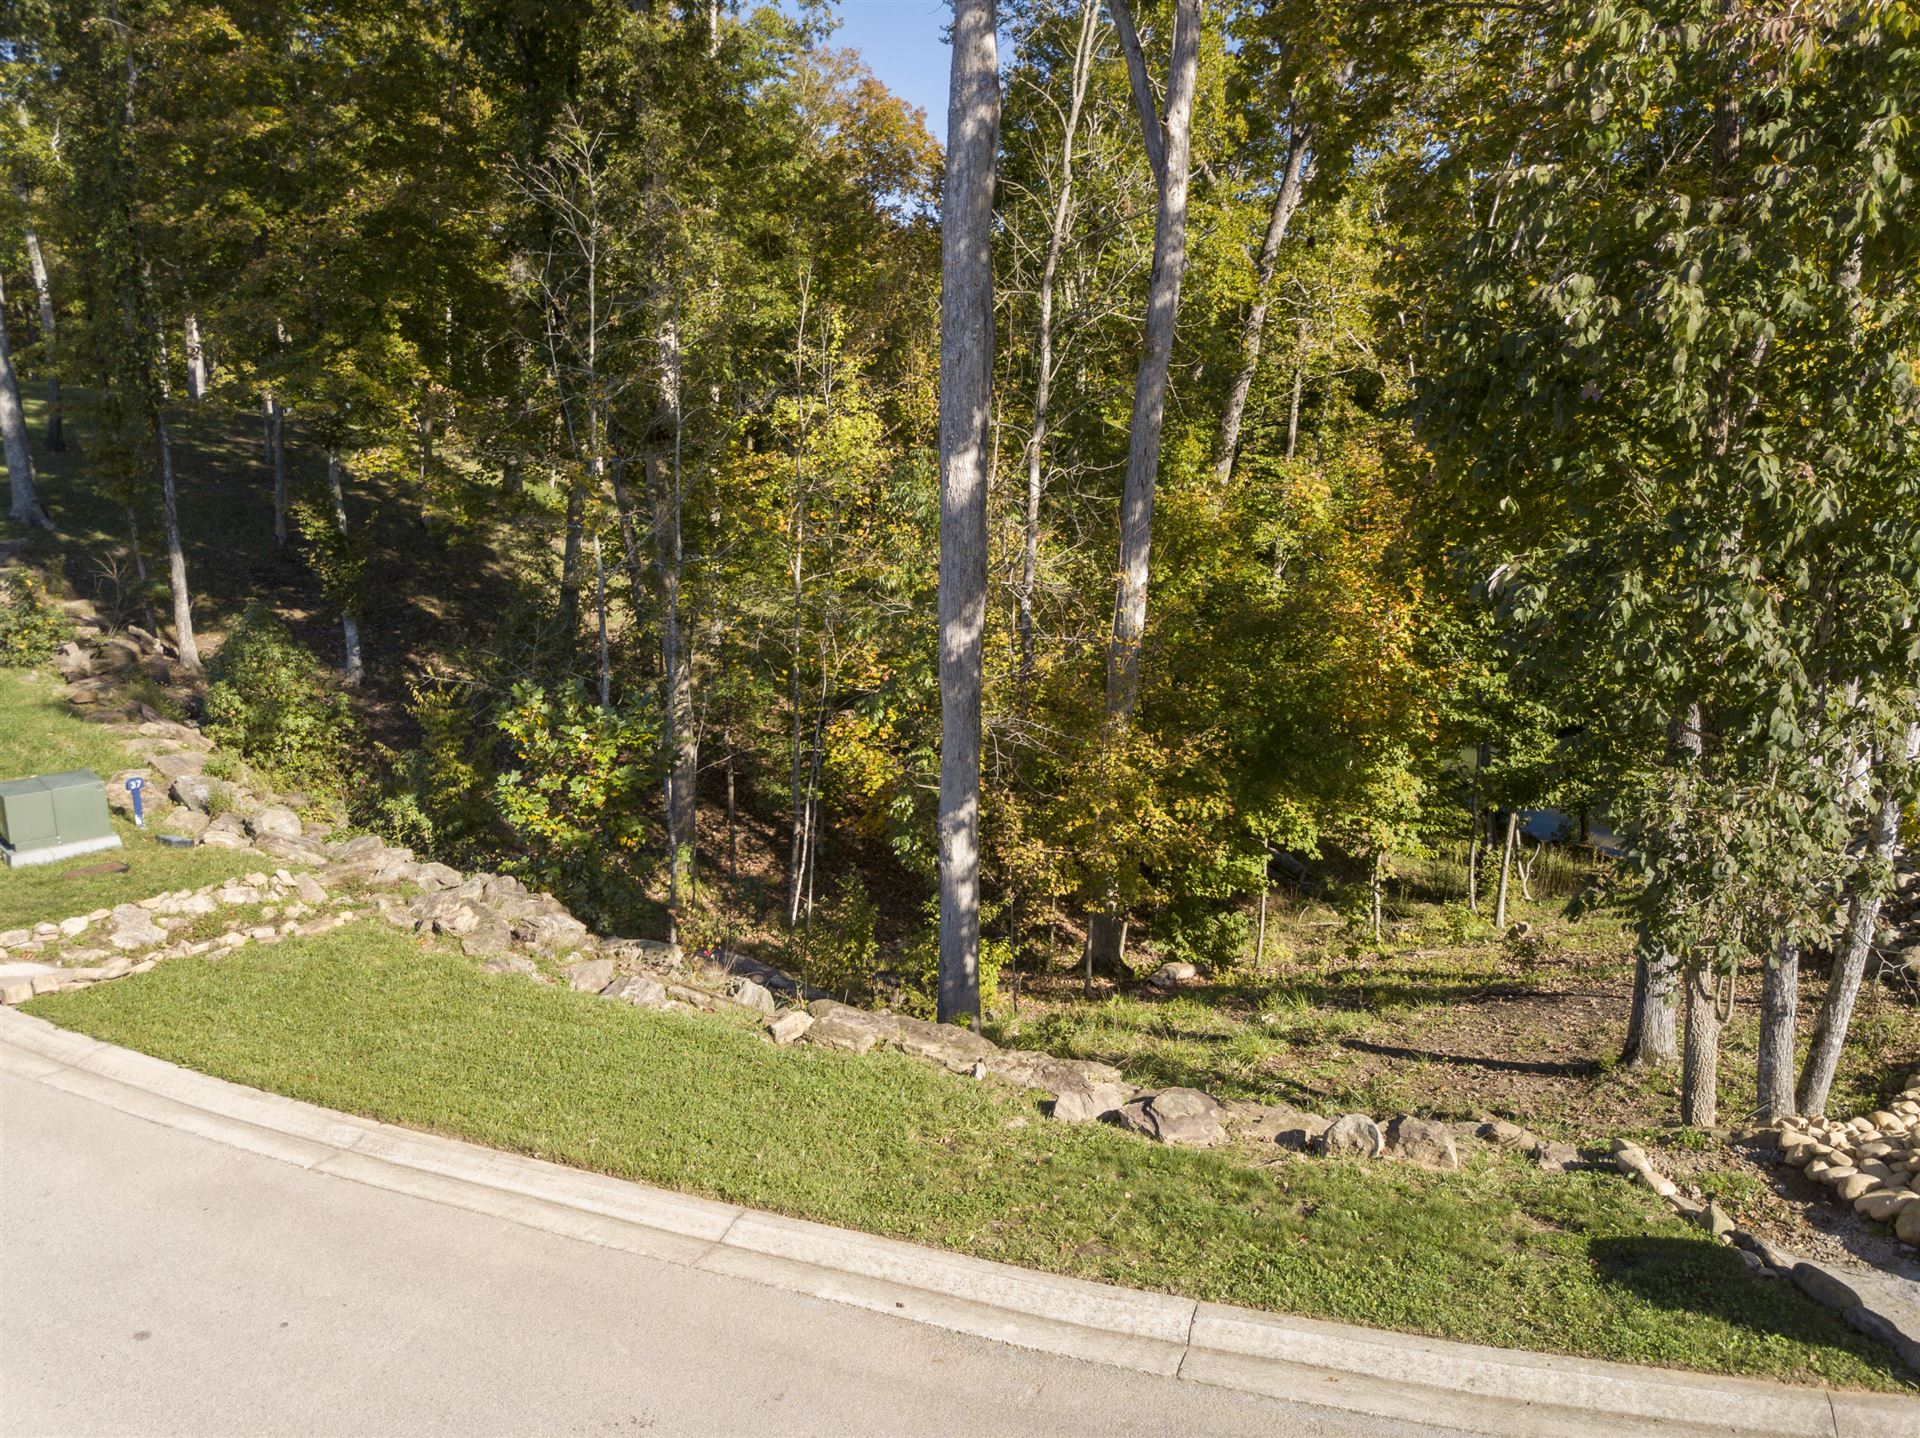 Photo for Lot 38 Waterfront Way, Ten Mile, TN 37880 (MLS # 1133333)